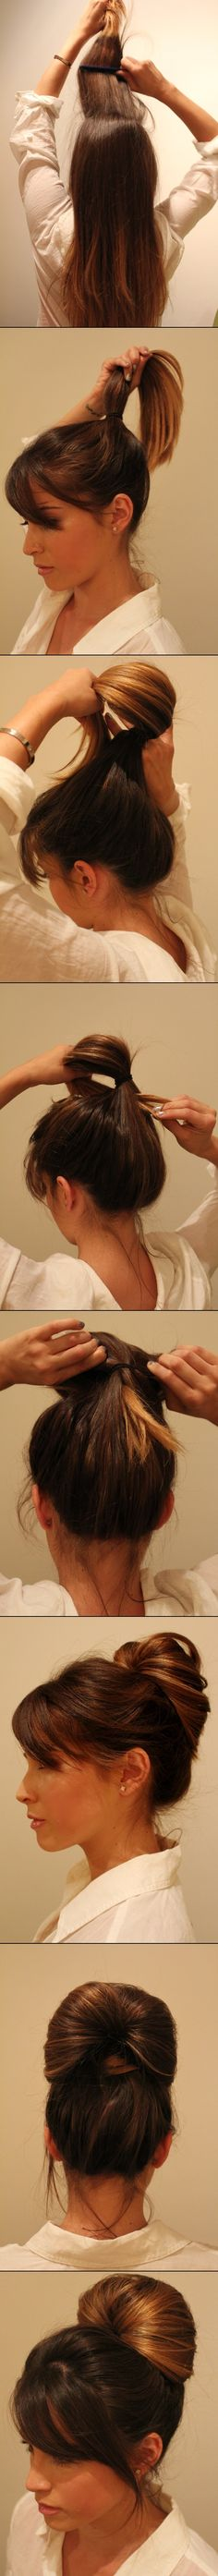 Chignon - 16 Gorgeous Hair for Lazy Girls like Me . → Hair Chignon - 16 Gorgeous Hair for Lazy Girls like Me . Pretty Hairstyles, Easy Hairstyles, Medium Hairstyles, Latest Hairstyles, Wedding Hairstyles, Fashion Hairstyles, New Hair, Your Hair, Coiffure Hair